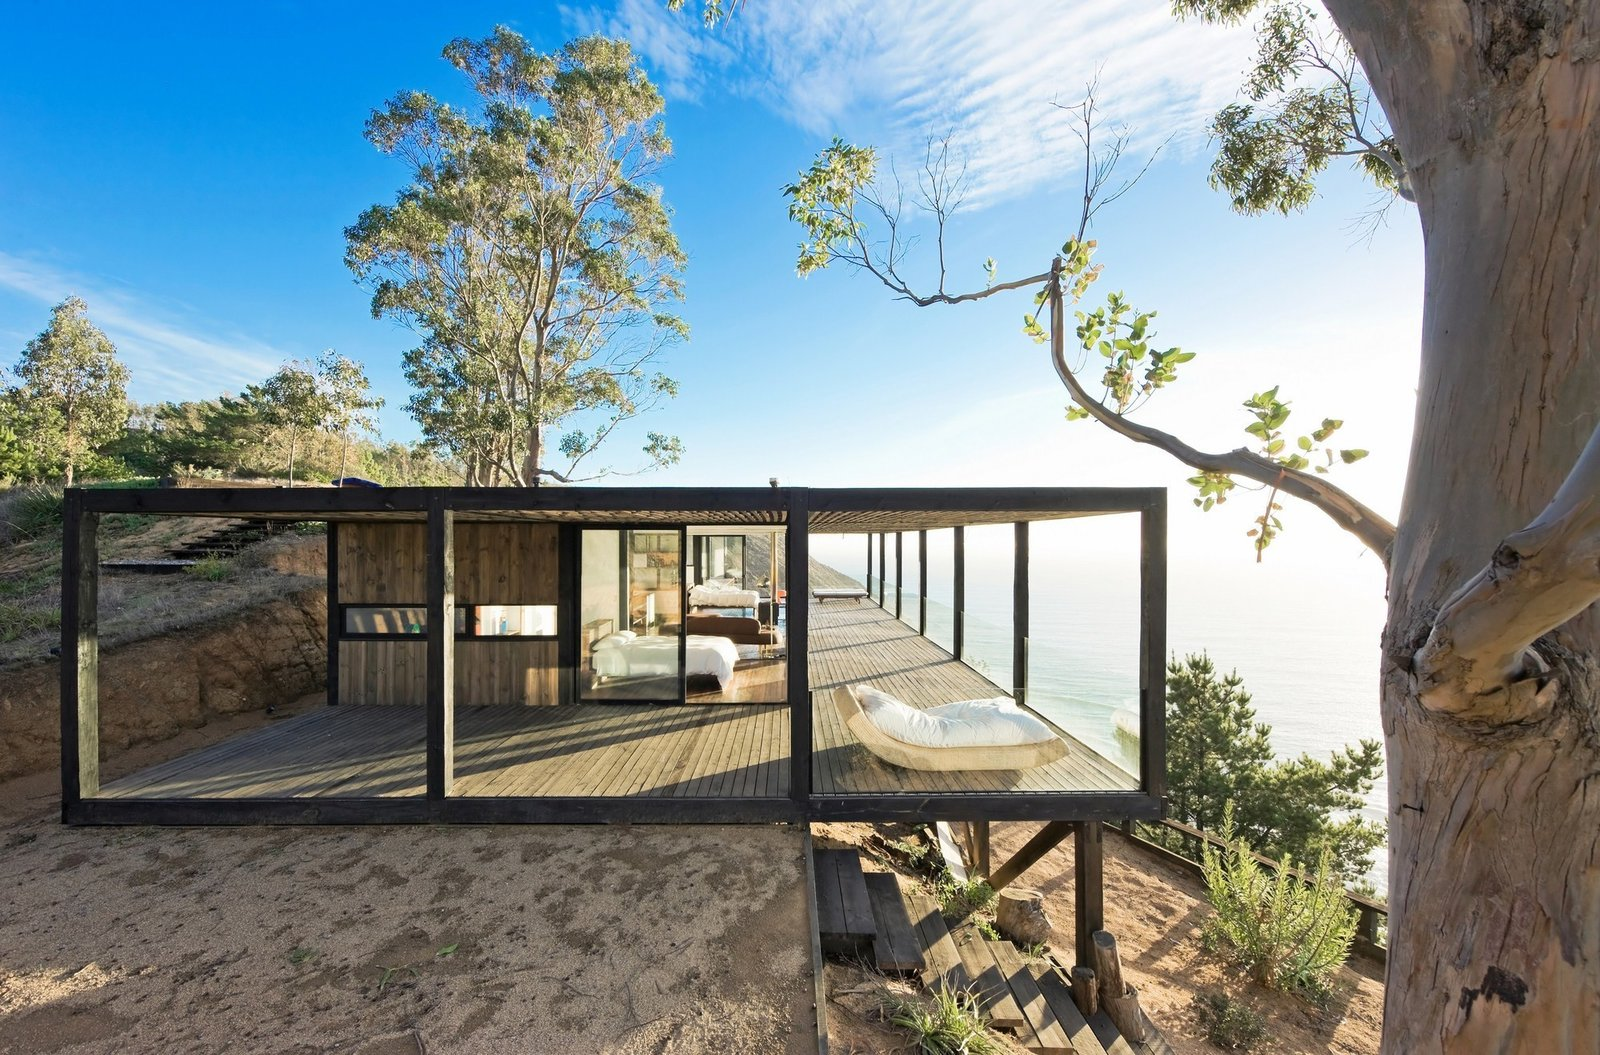 Casa Till, WMR Arquitectos, Chile  Views by DAVE MORIN from Surf Shacks